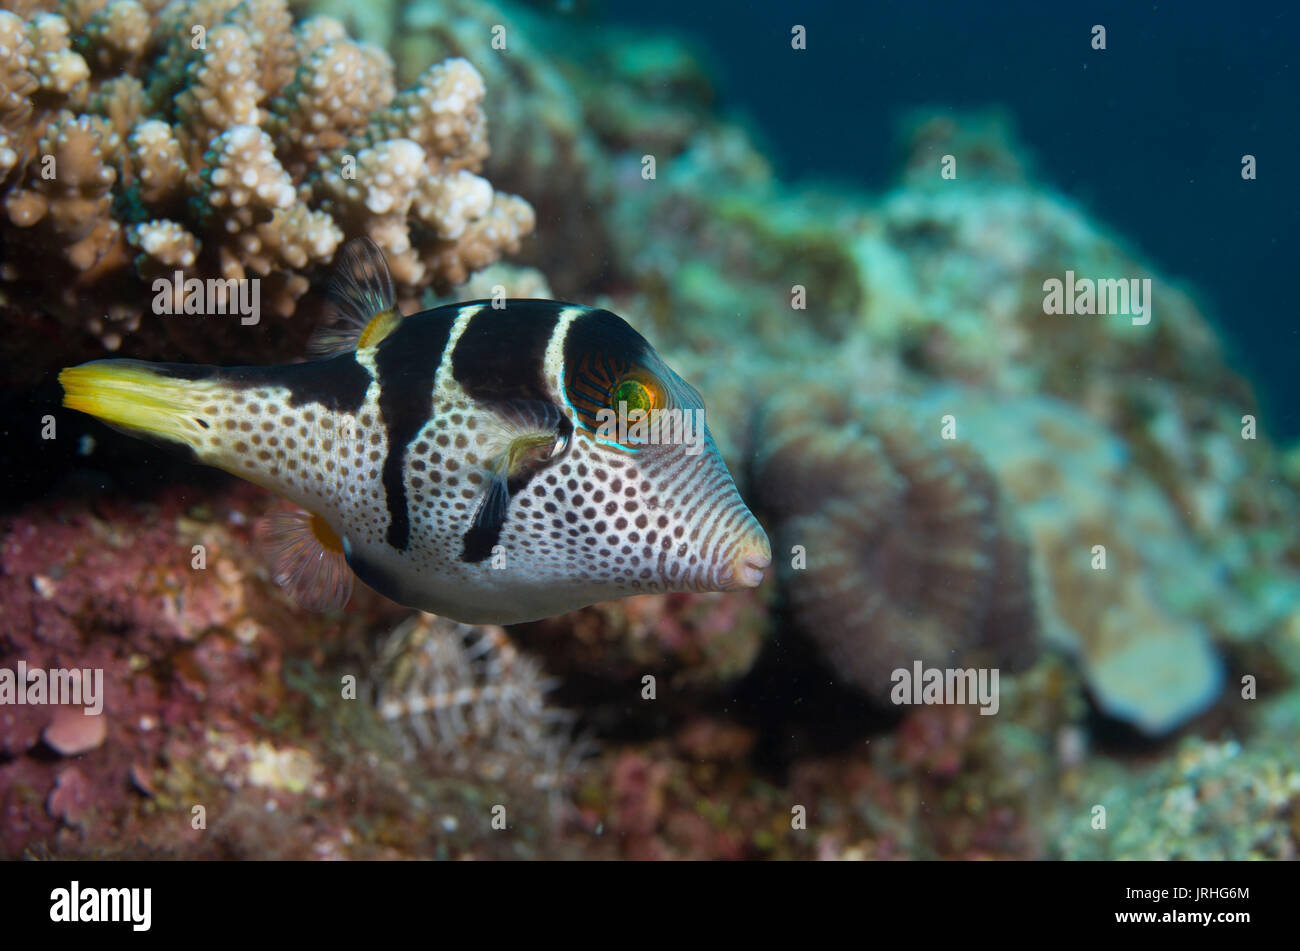 Valentin's sharpnose puffer (Canthigaster valentini), also known as the saddled puffer or black saddled toby. Cape Maeda, Okinawa, Japan. Stock Photo